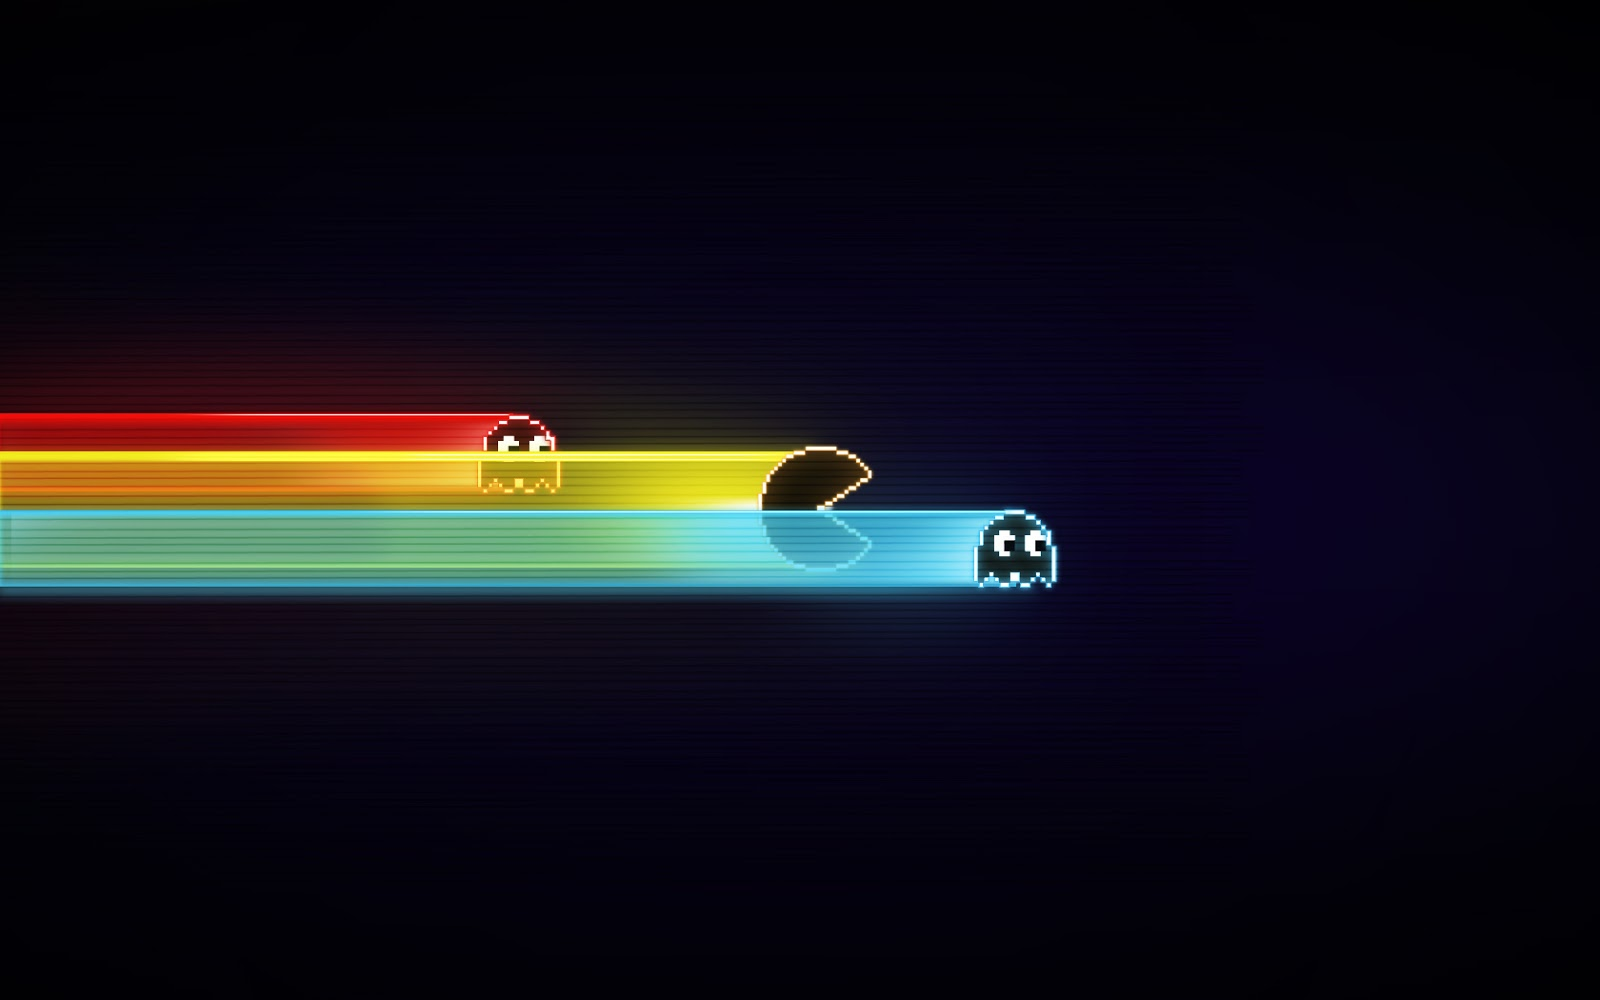 Nice And Simple Colourful Pacman Desktop Wallpaper HD Wallpapers Download Free Images Wallpaper [1000image.com]